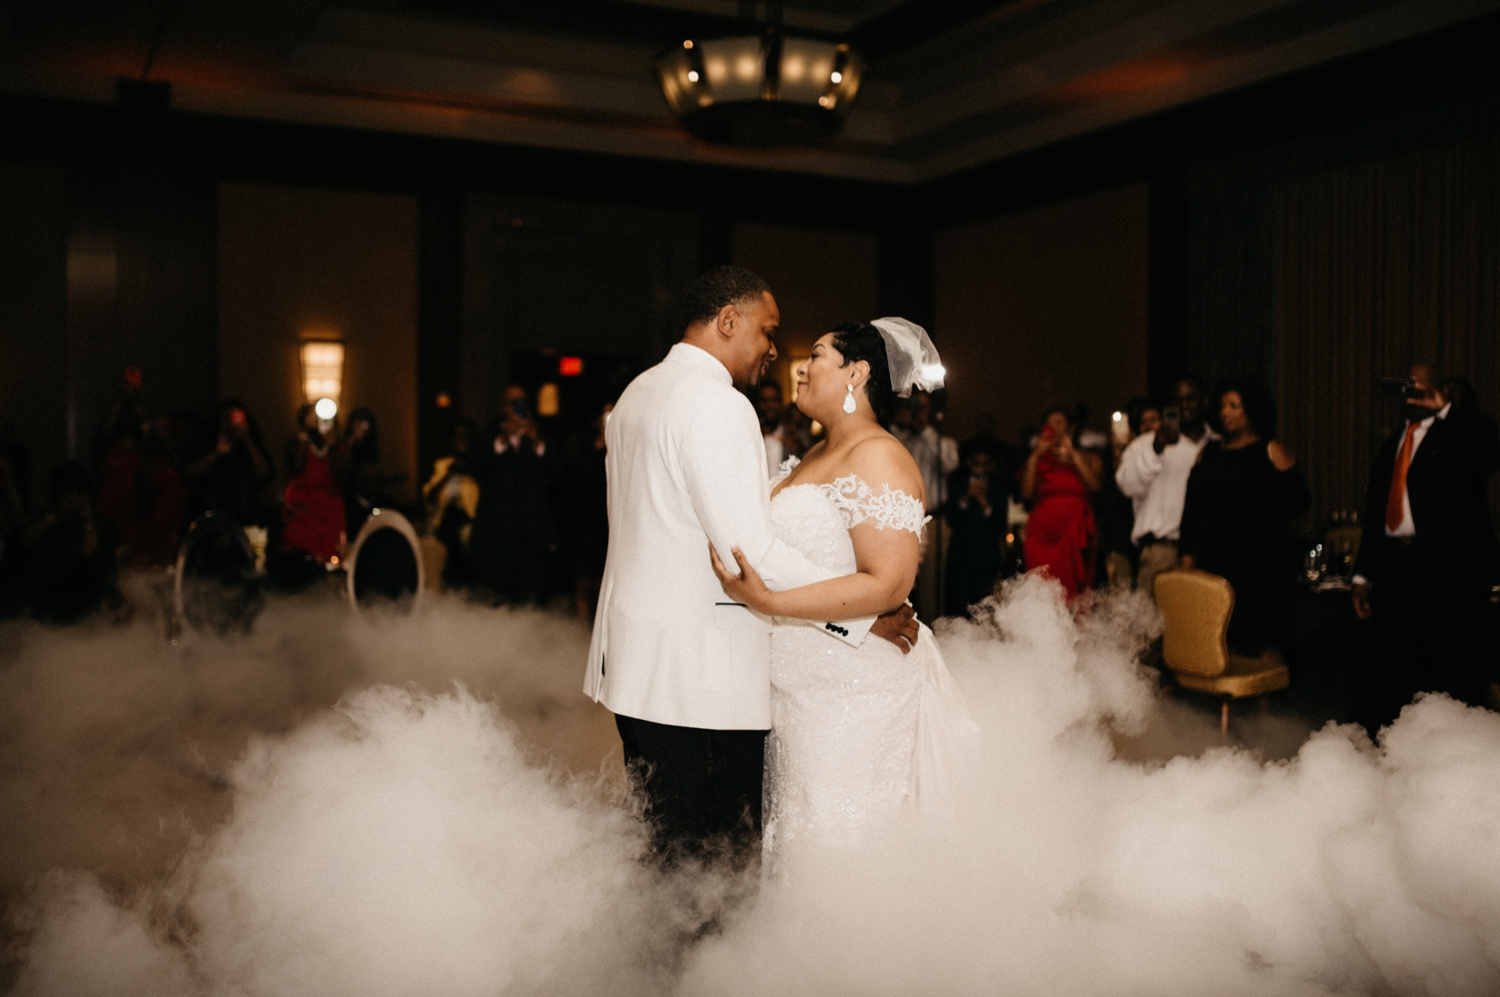 69_Ritz-carlton-wedding_charlotteNC_charlotteweddingphotographer.jpg